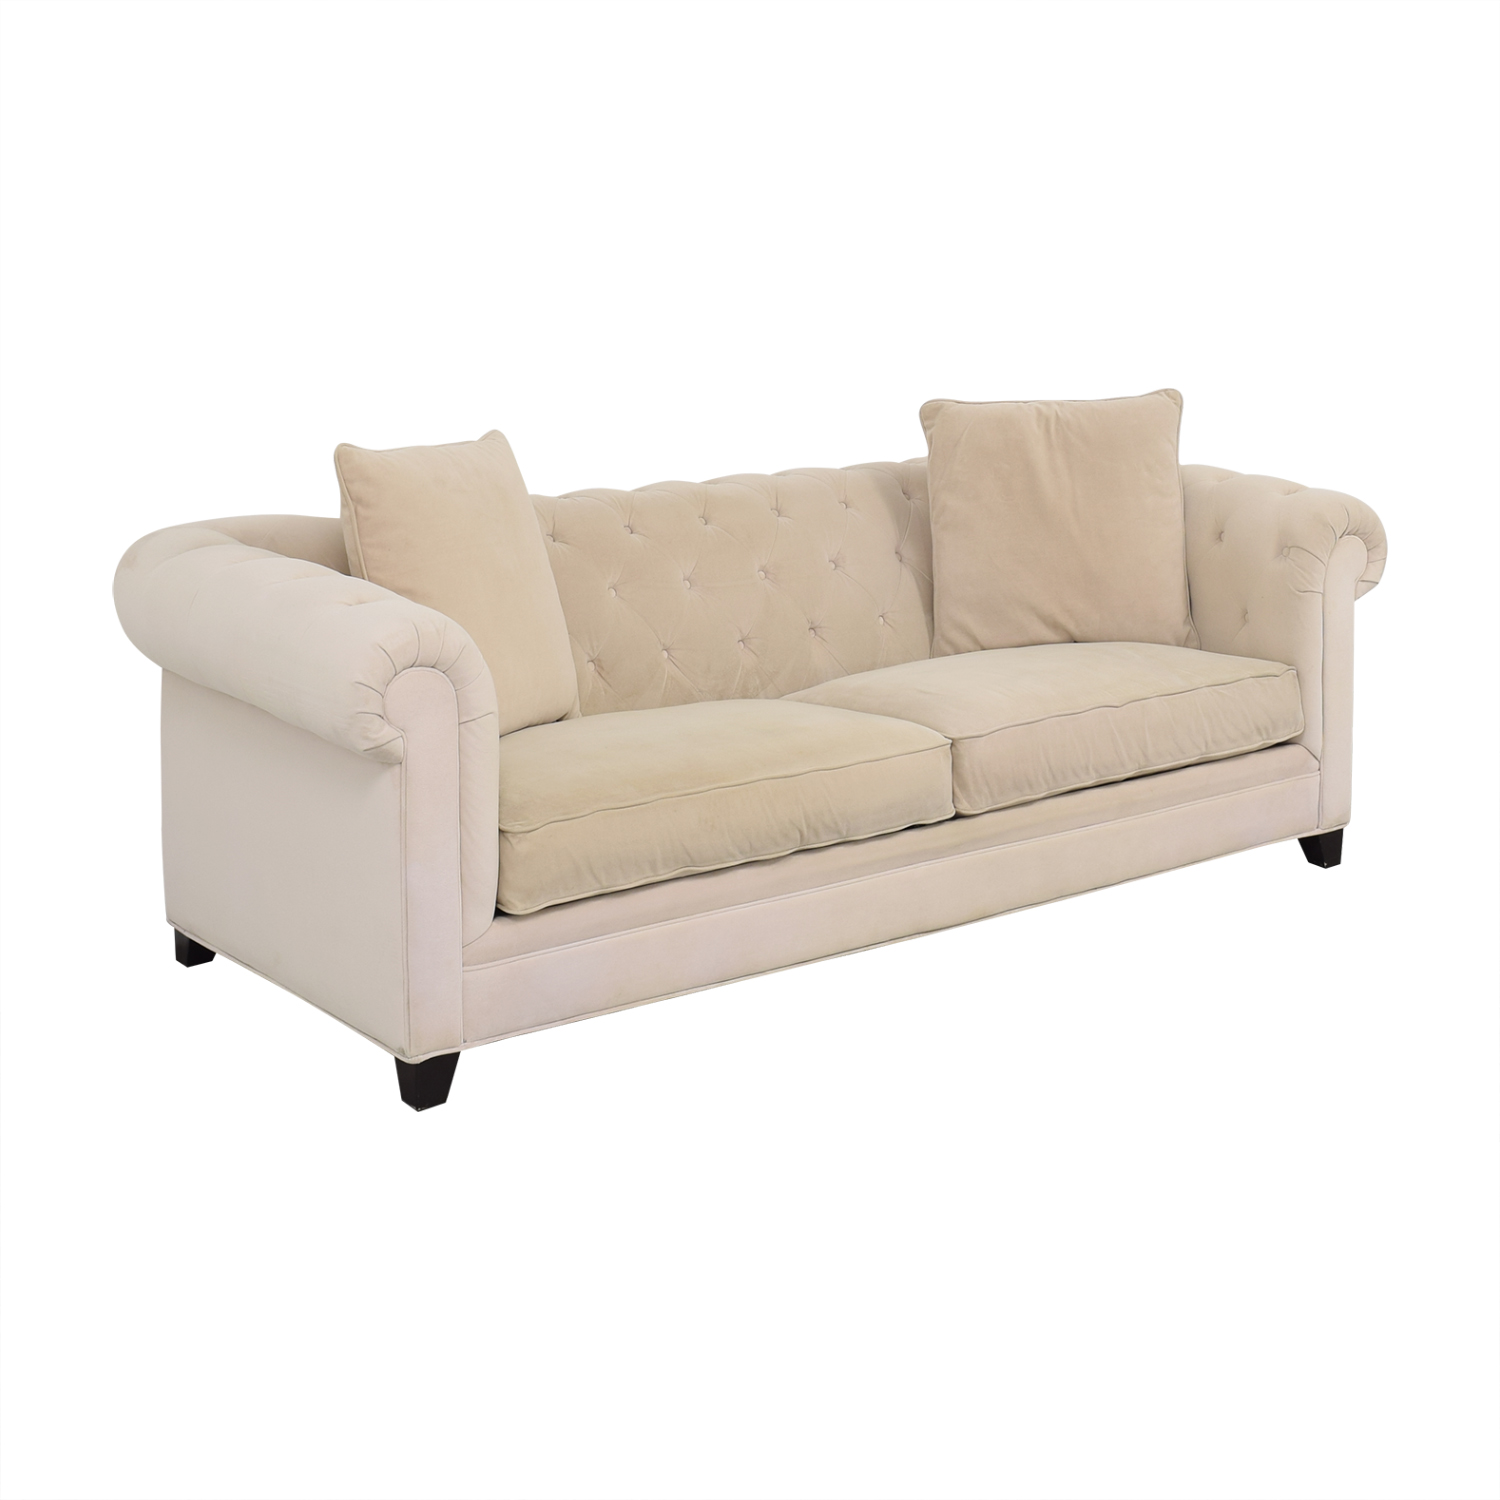 Macy's Macy's Martha Stewart Collection Saybridge Sofa dimensions